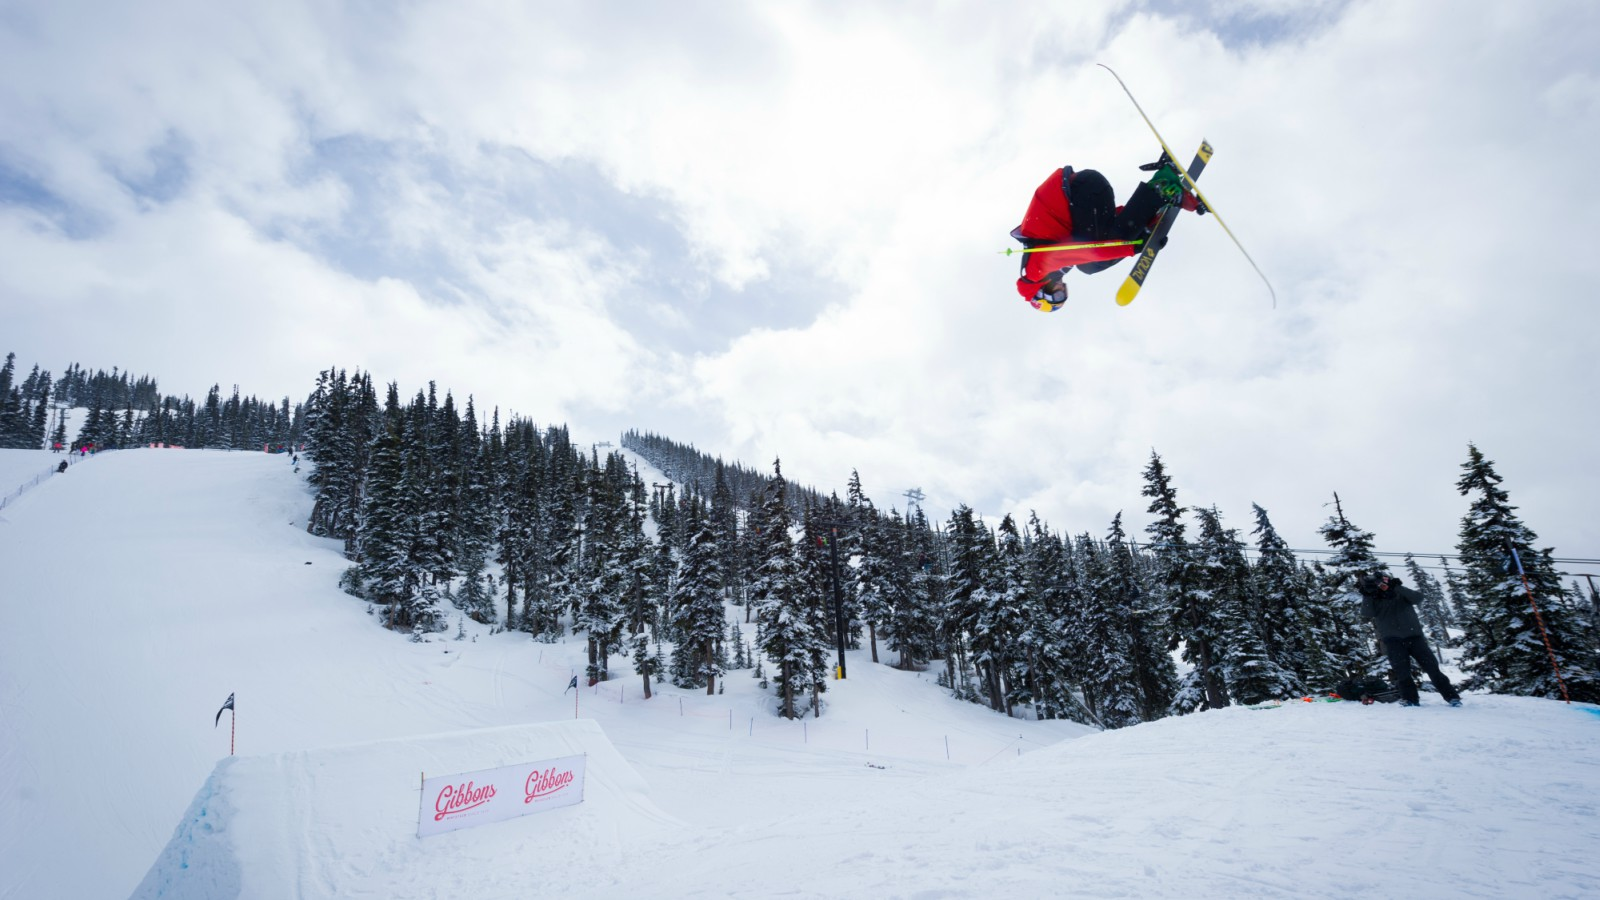 The World Ski and Snowboard Festival - The Westin Resort & Spa, Whistler